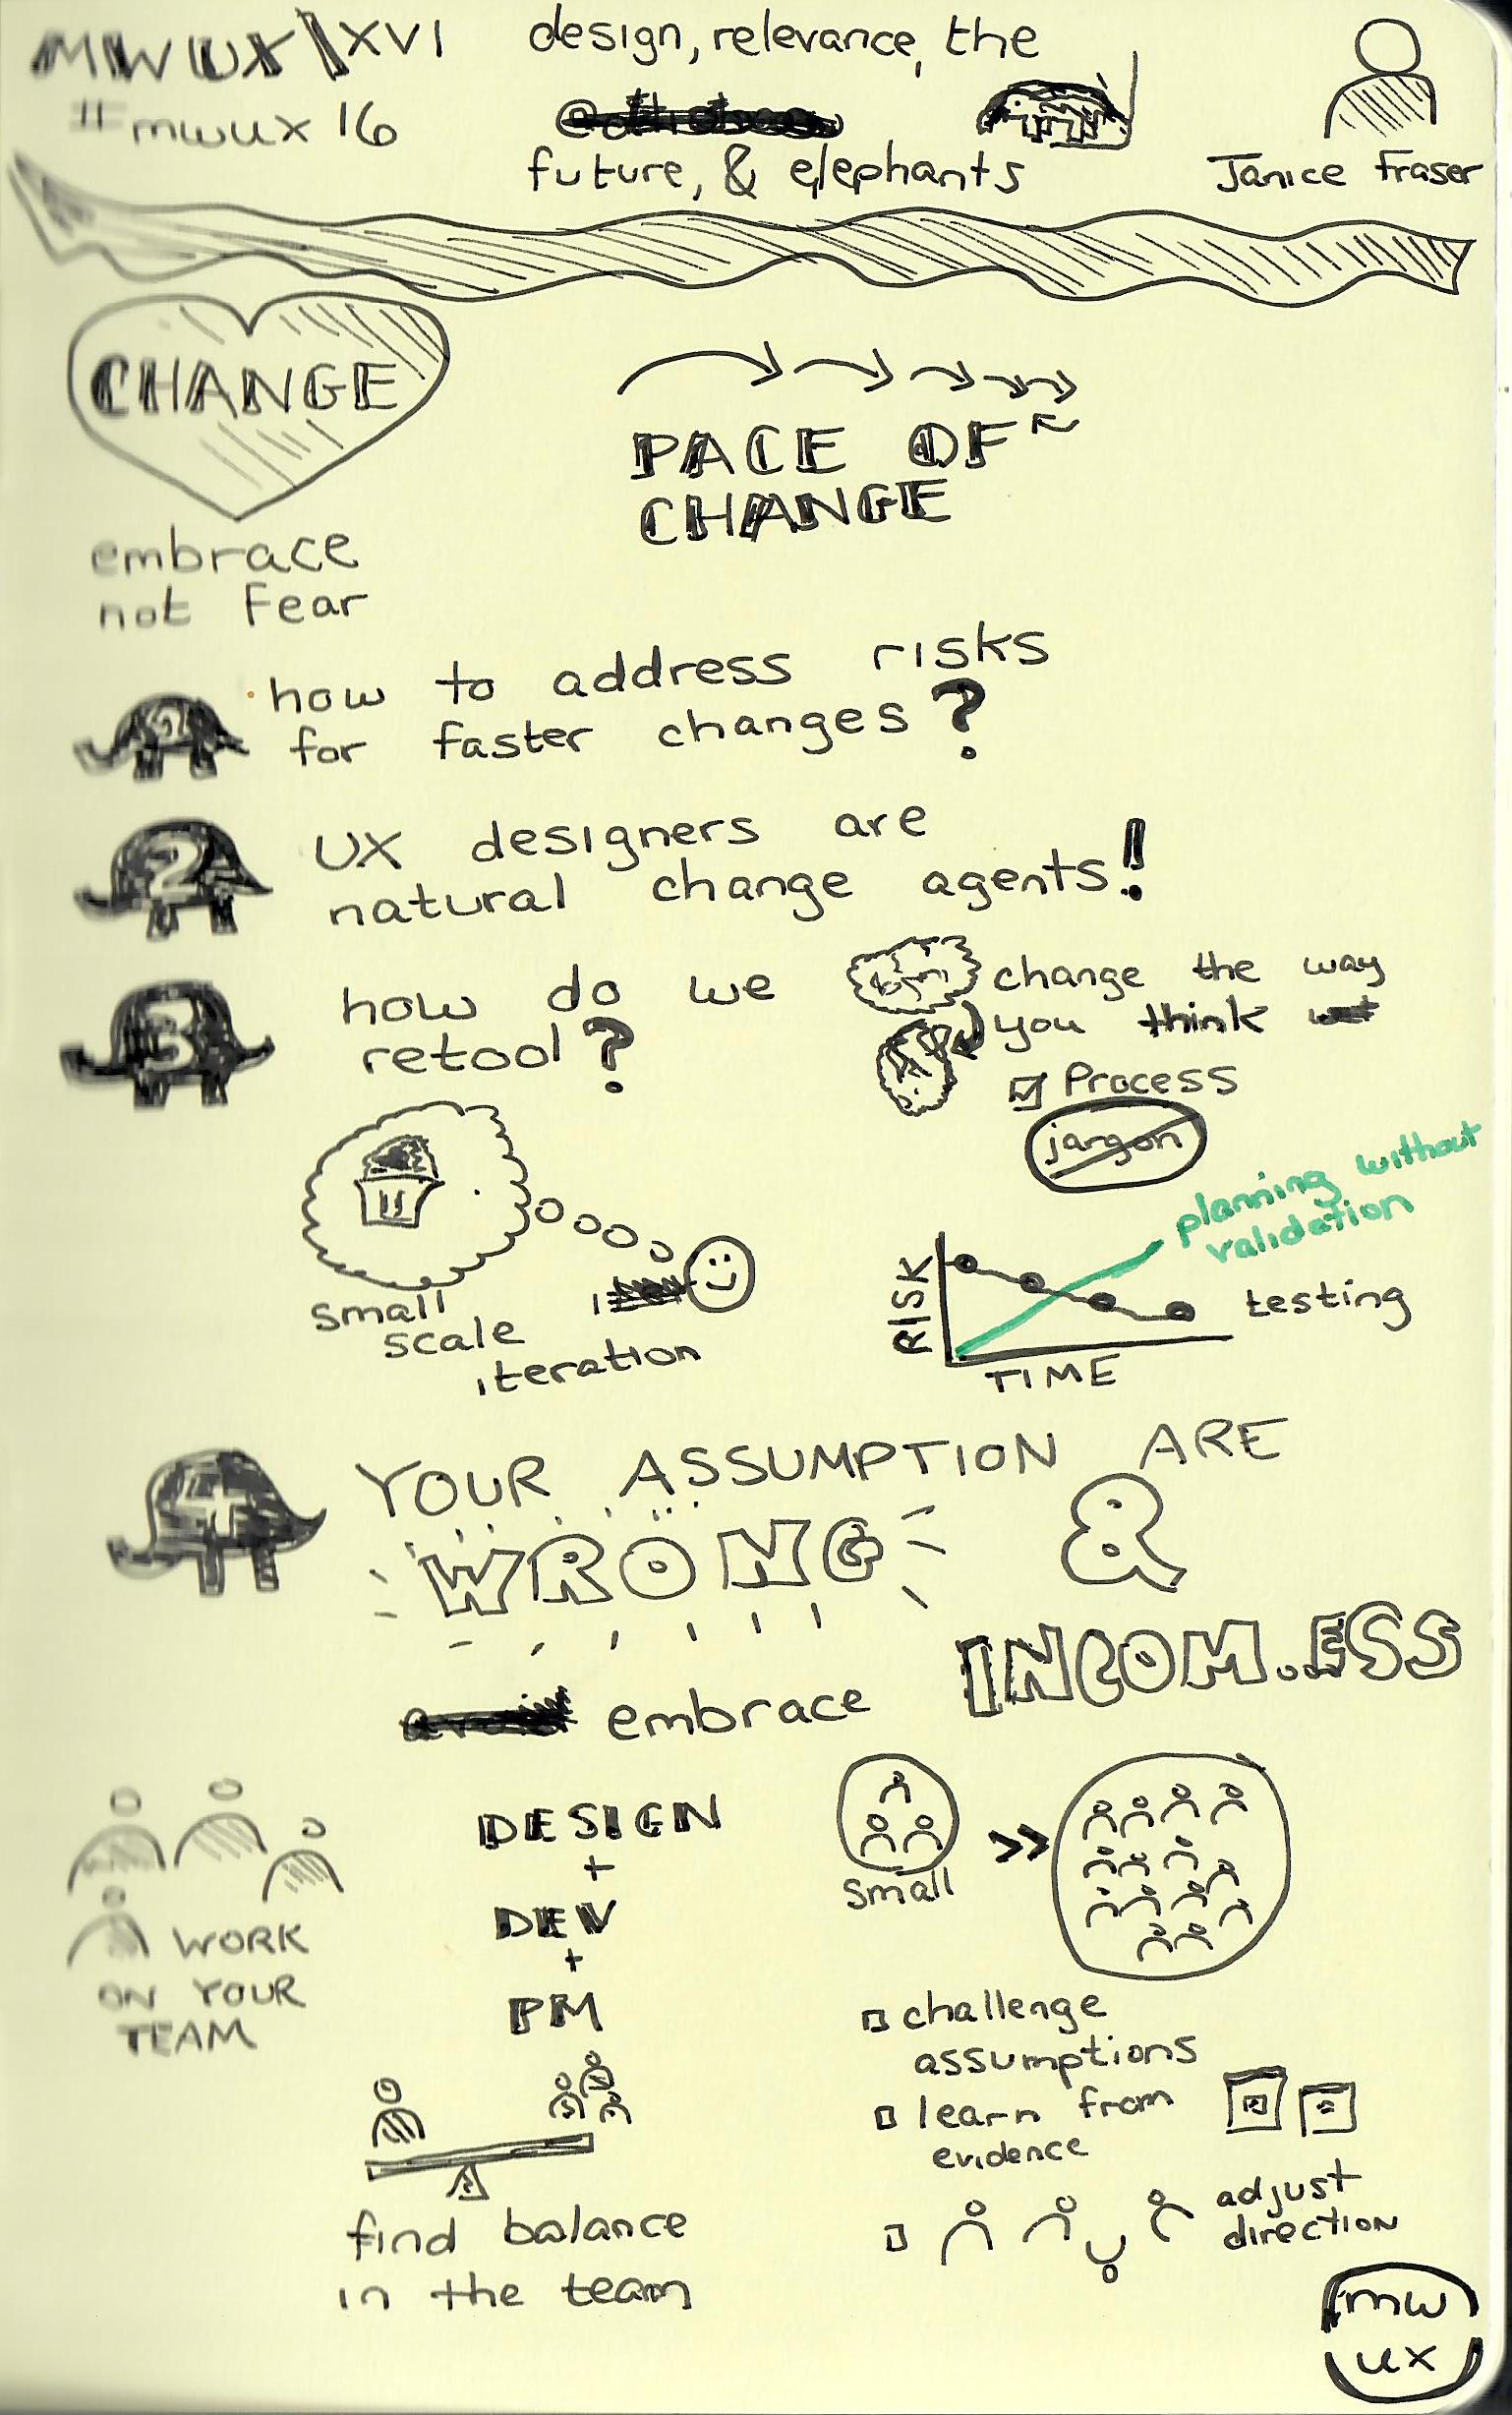 Design Relevance the Future and Elephants (Janice Fraser).jpg